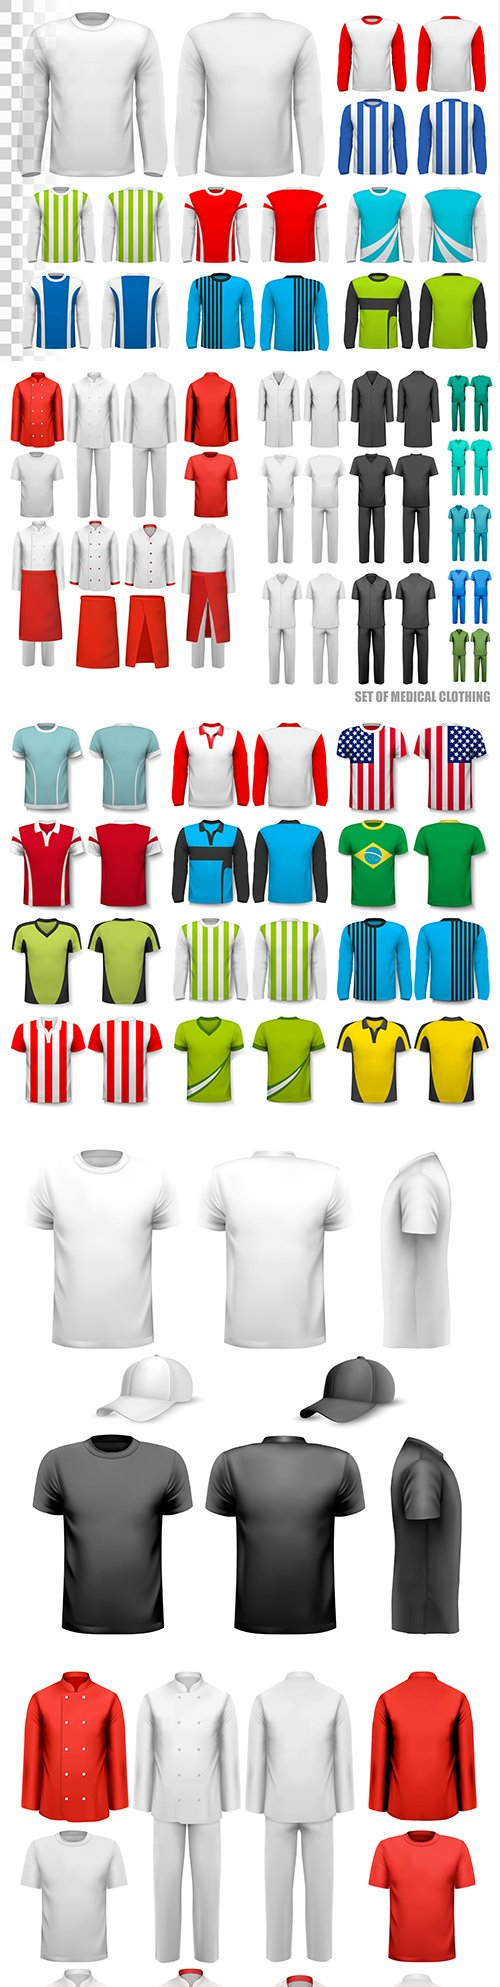 Men's shirts with sleeve and uniform kit design template